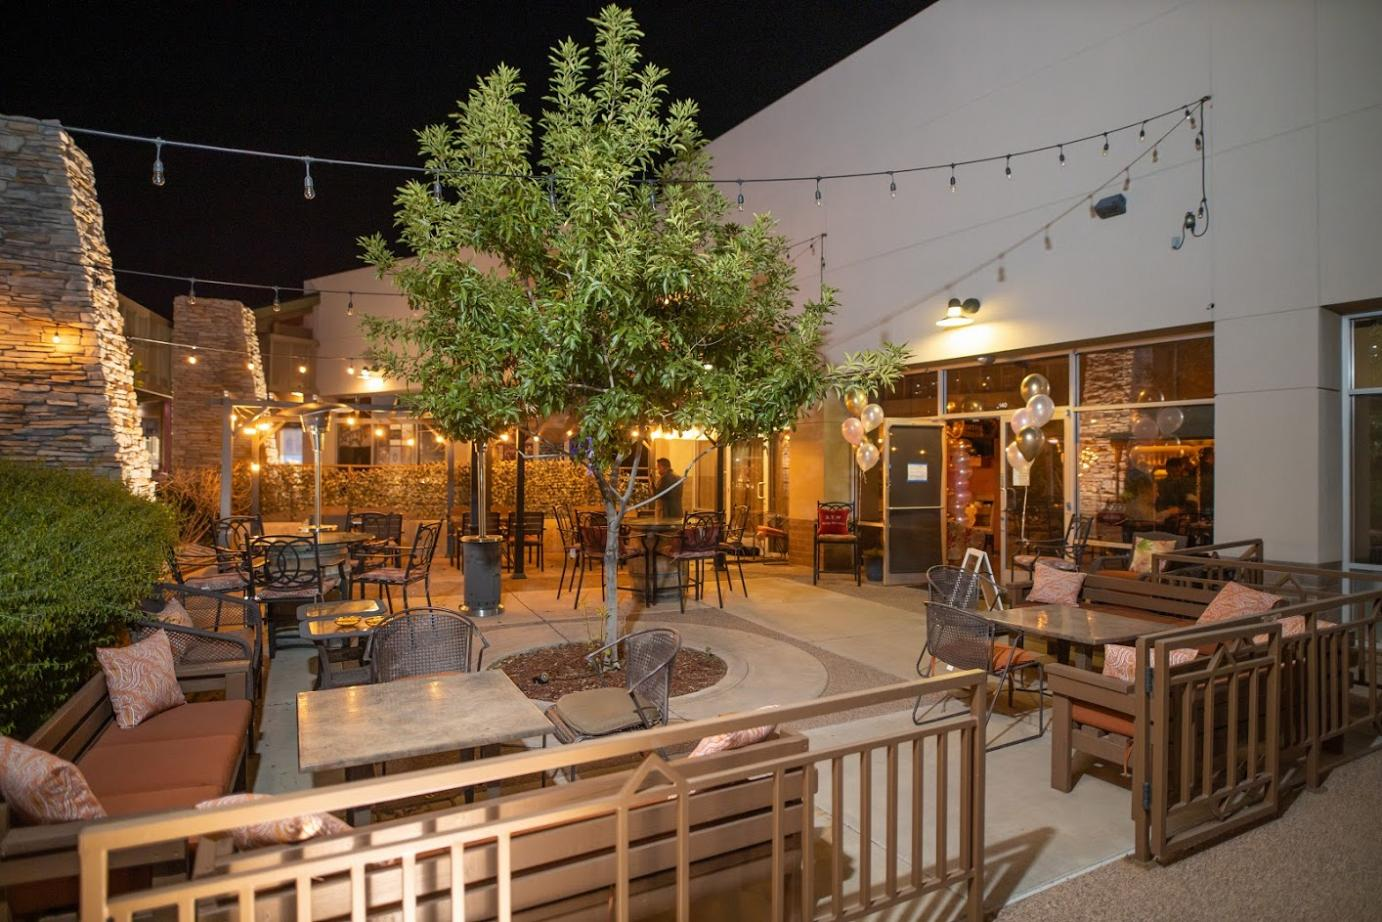 Exterior, night, outdoors seating area